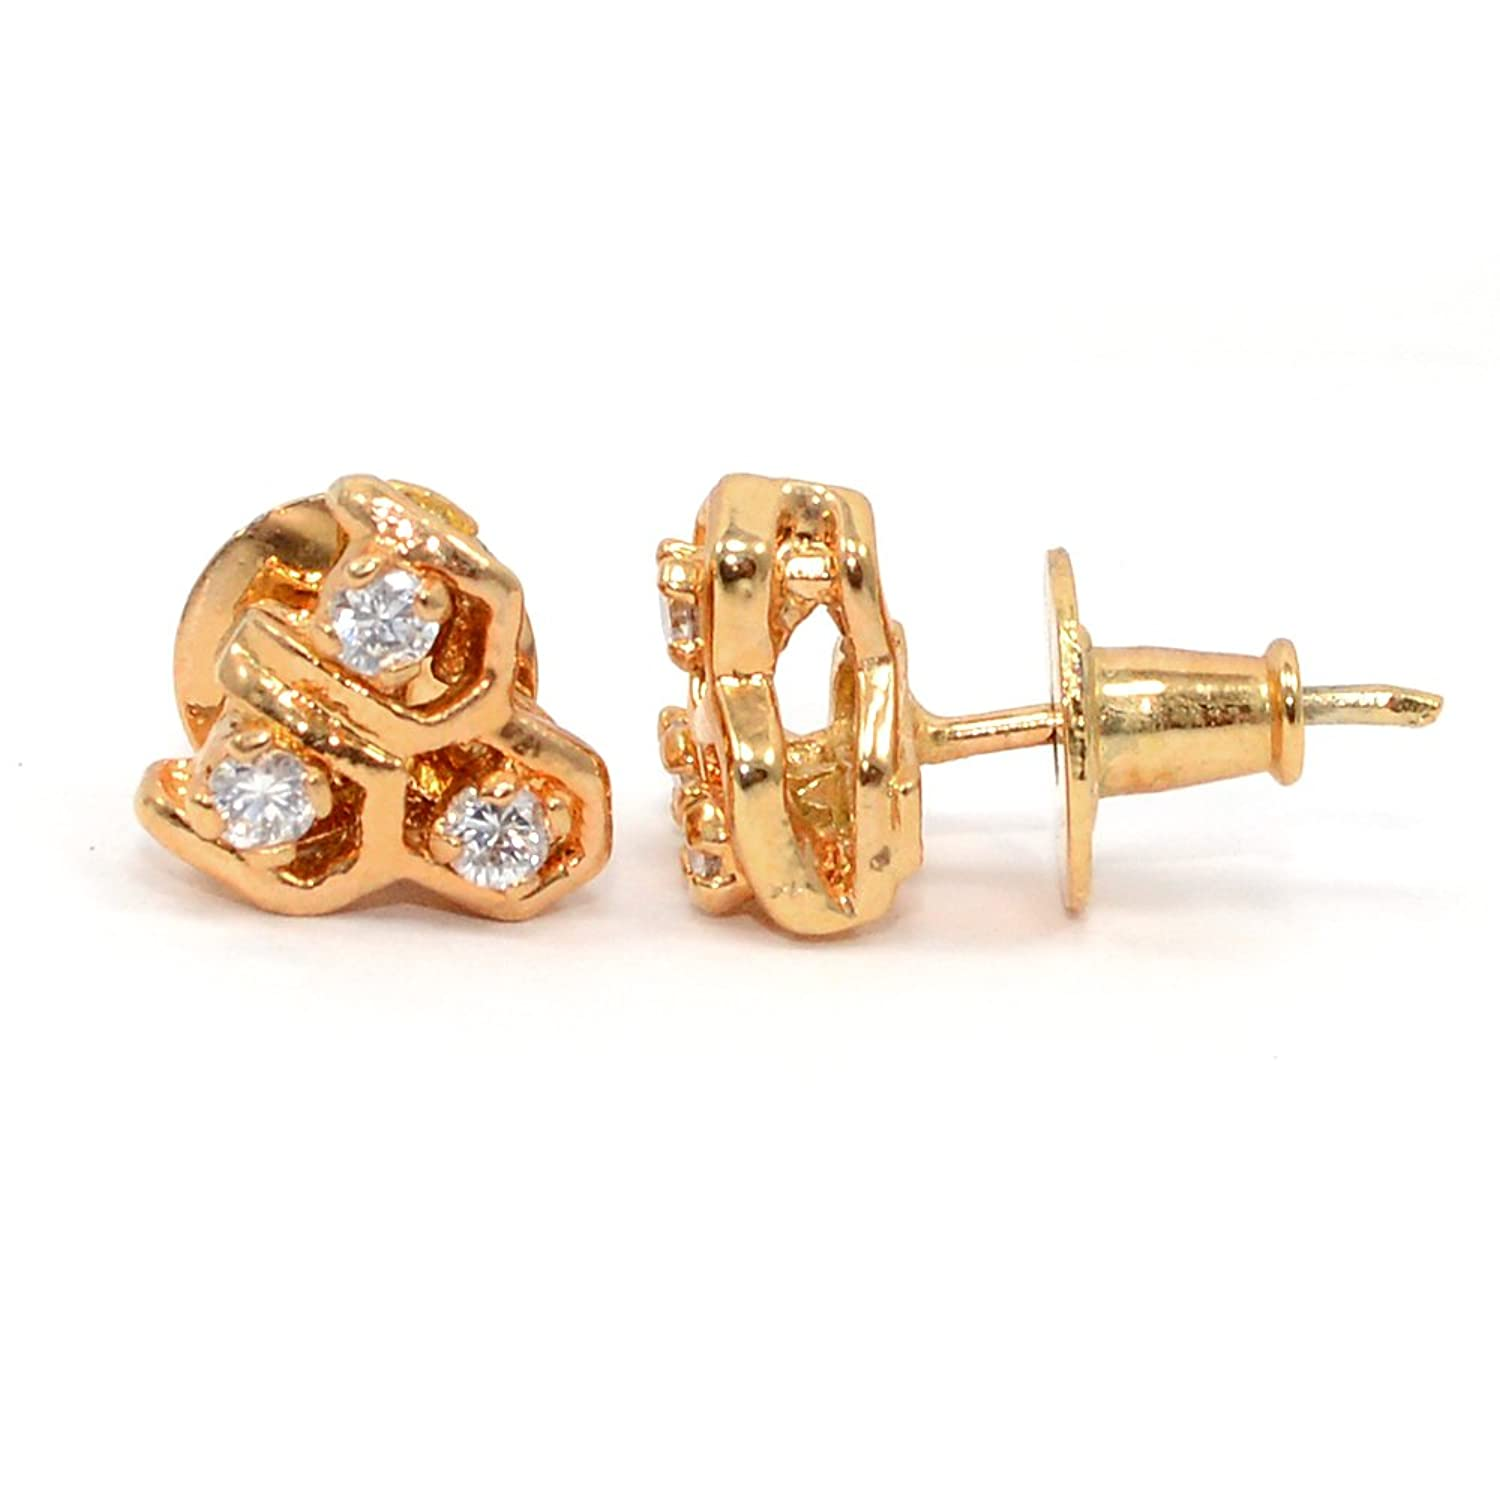 Silvestoo India Cubic Zircon Gold Plated Earring PG Amazon